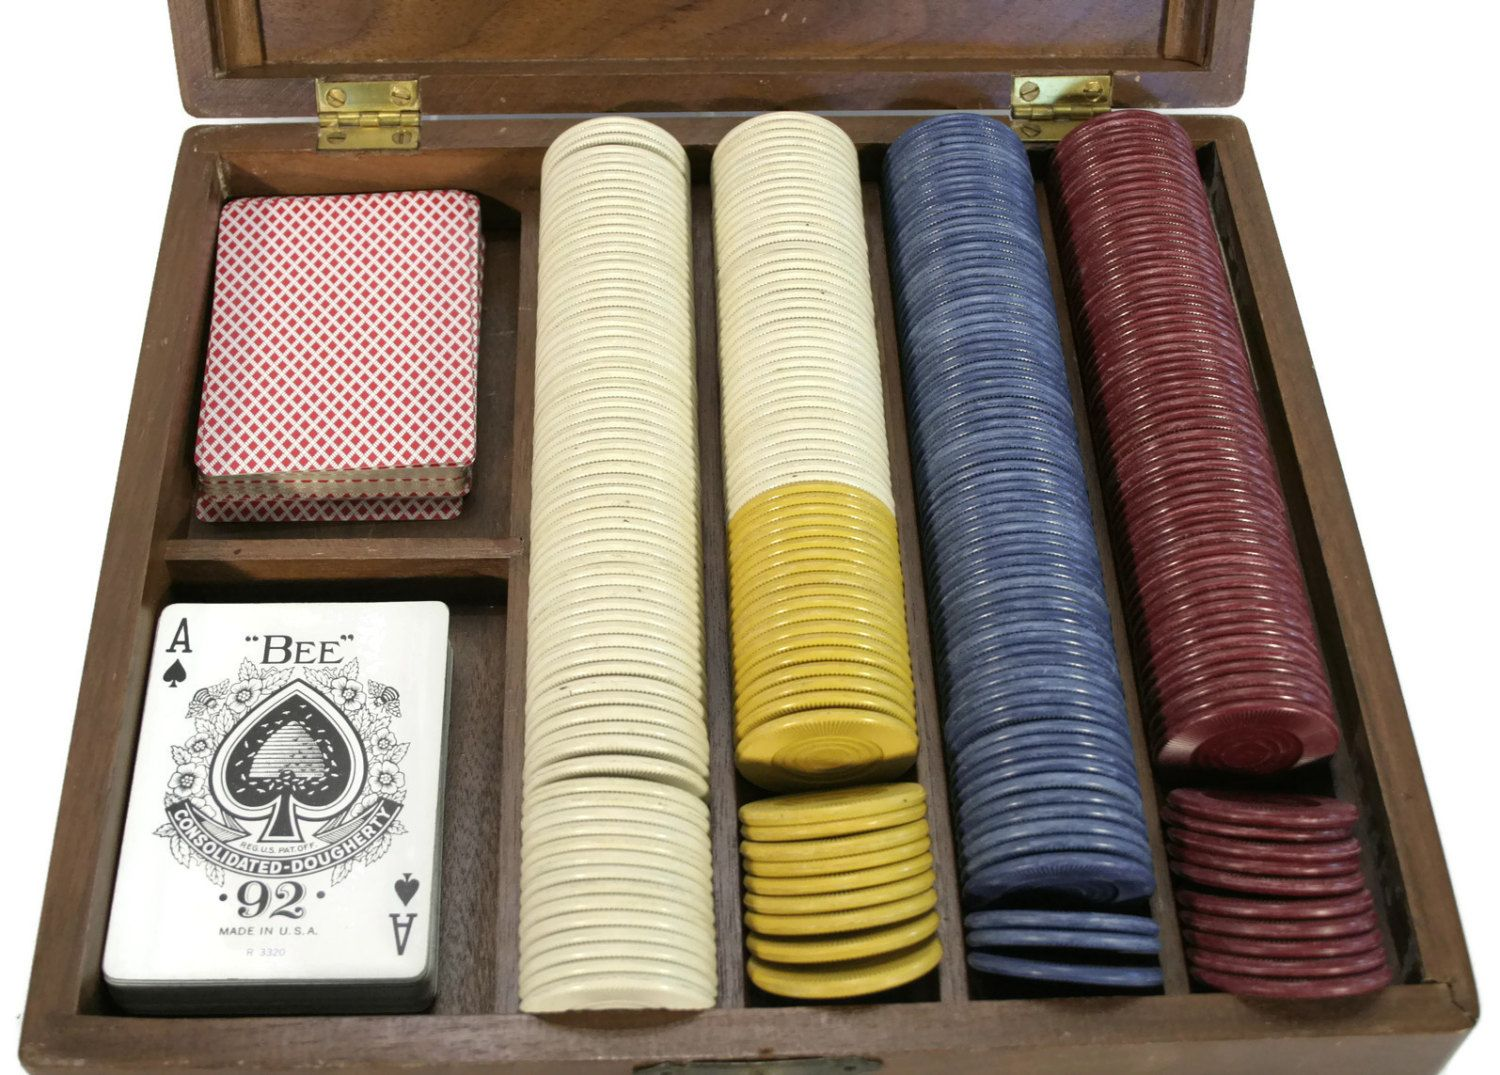 Lowe company vintage poker chips